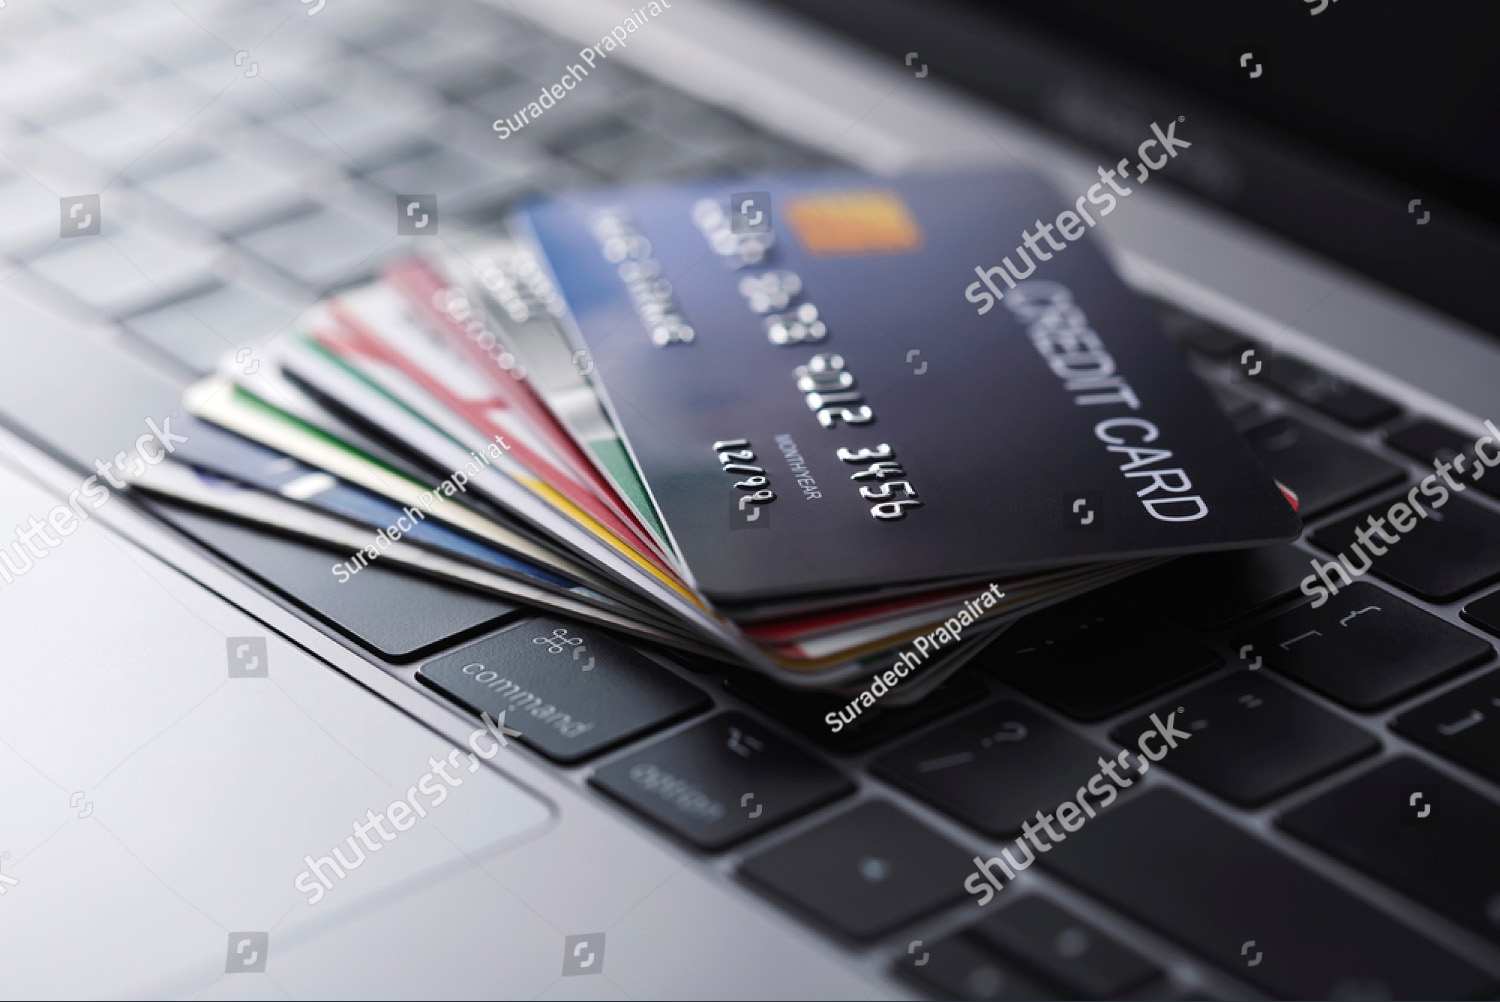 Accept Credit Card Payments: Acquiring